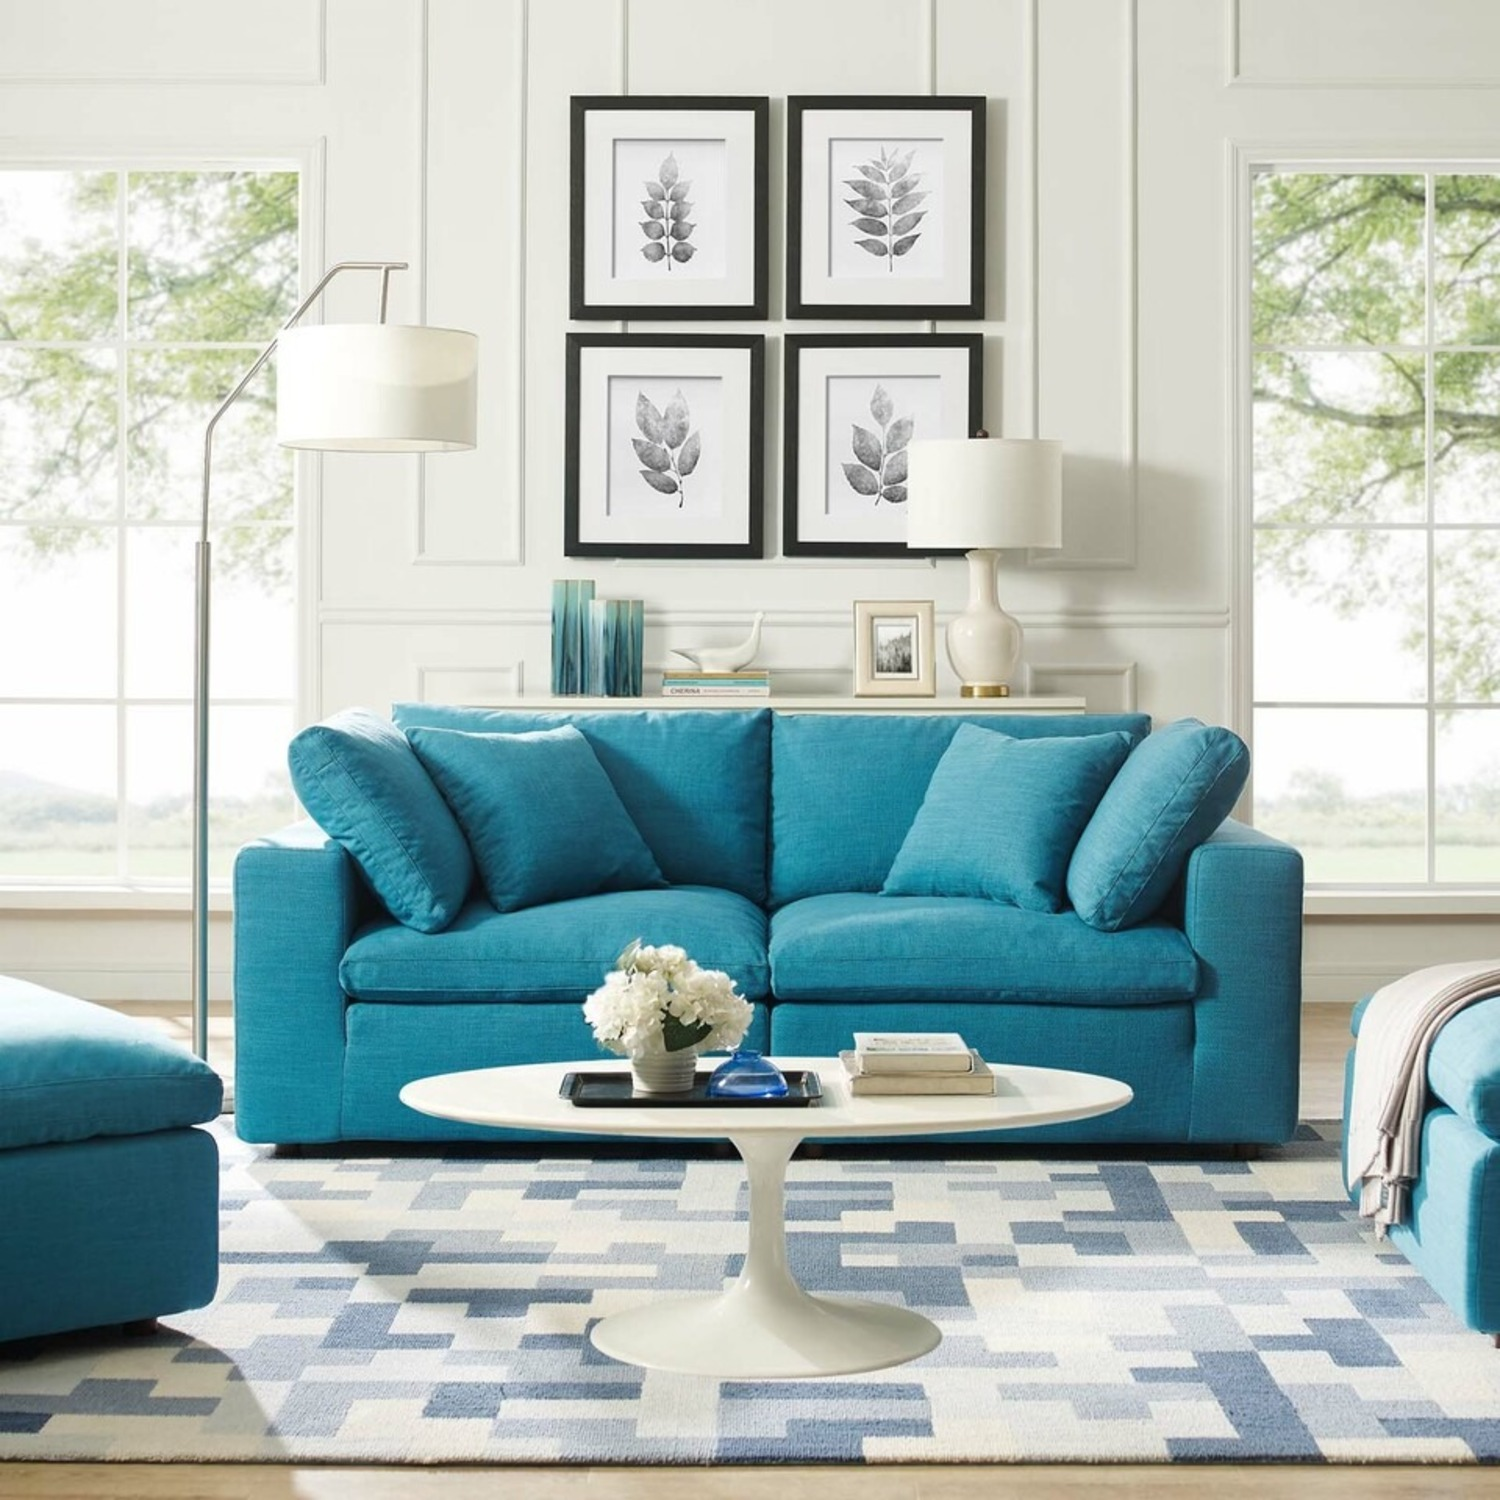 2-Piece Sectional Sofa In Teal Linen Fabric - image-5